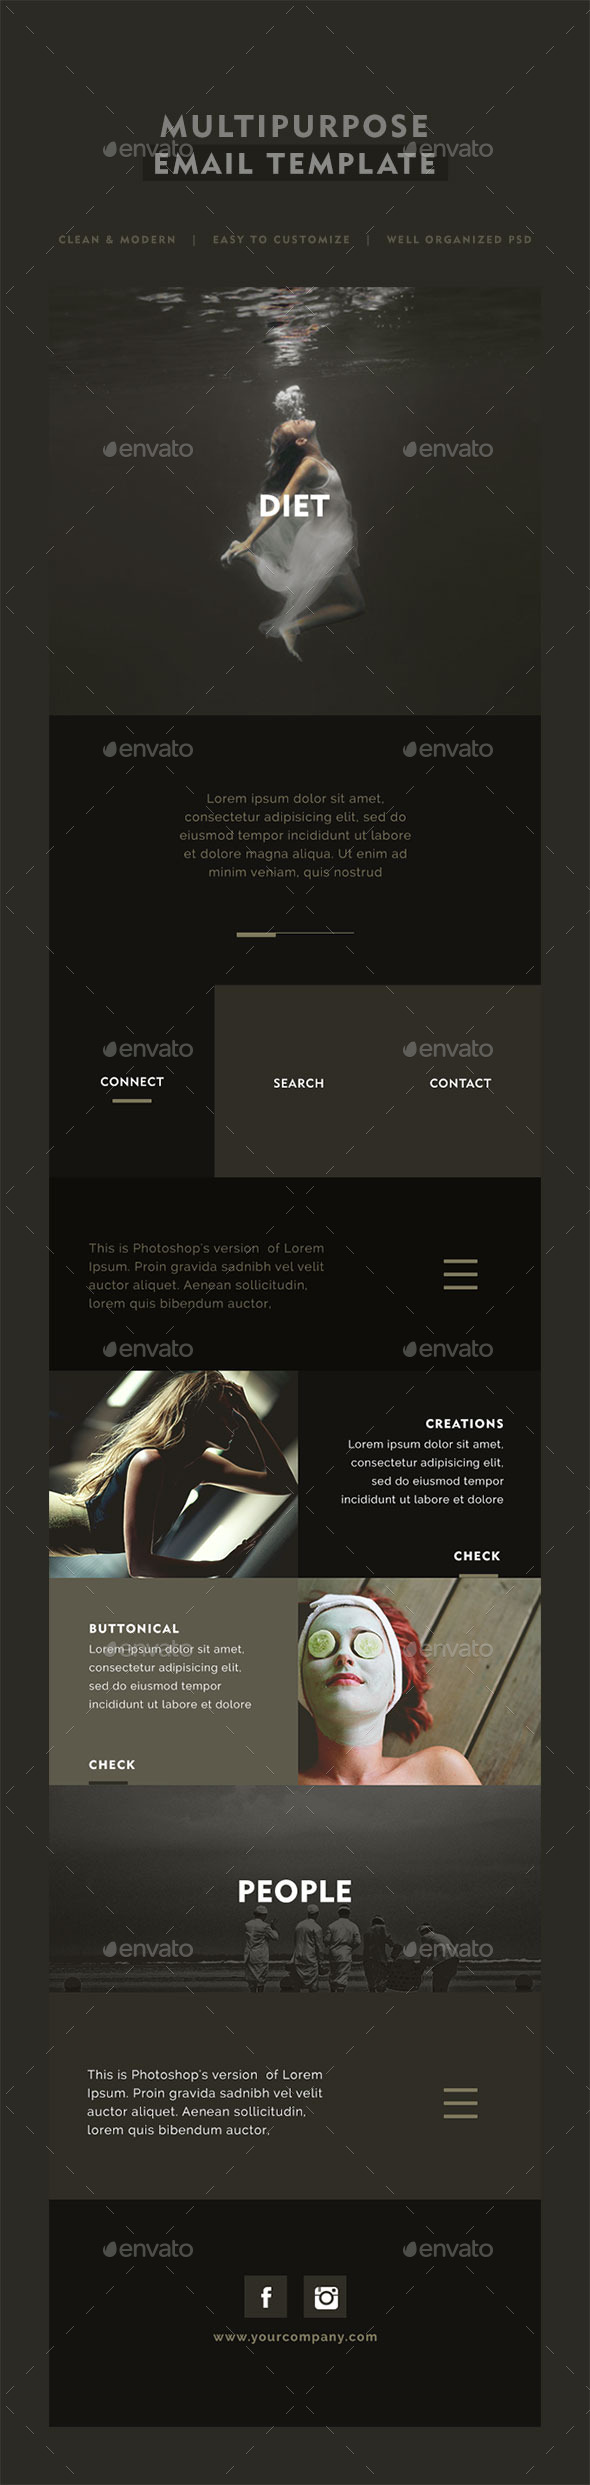 Diet Multipurpose Email Template - E-newsletters Web Elements